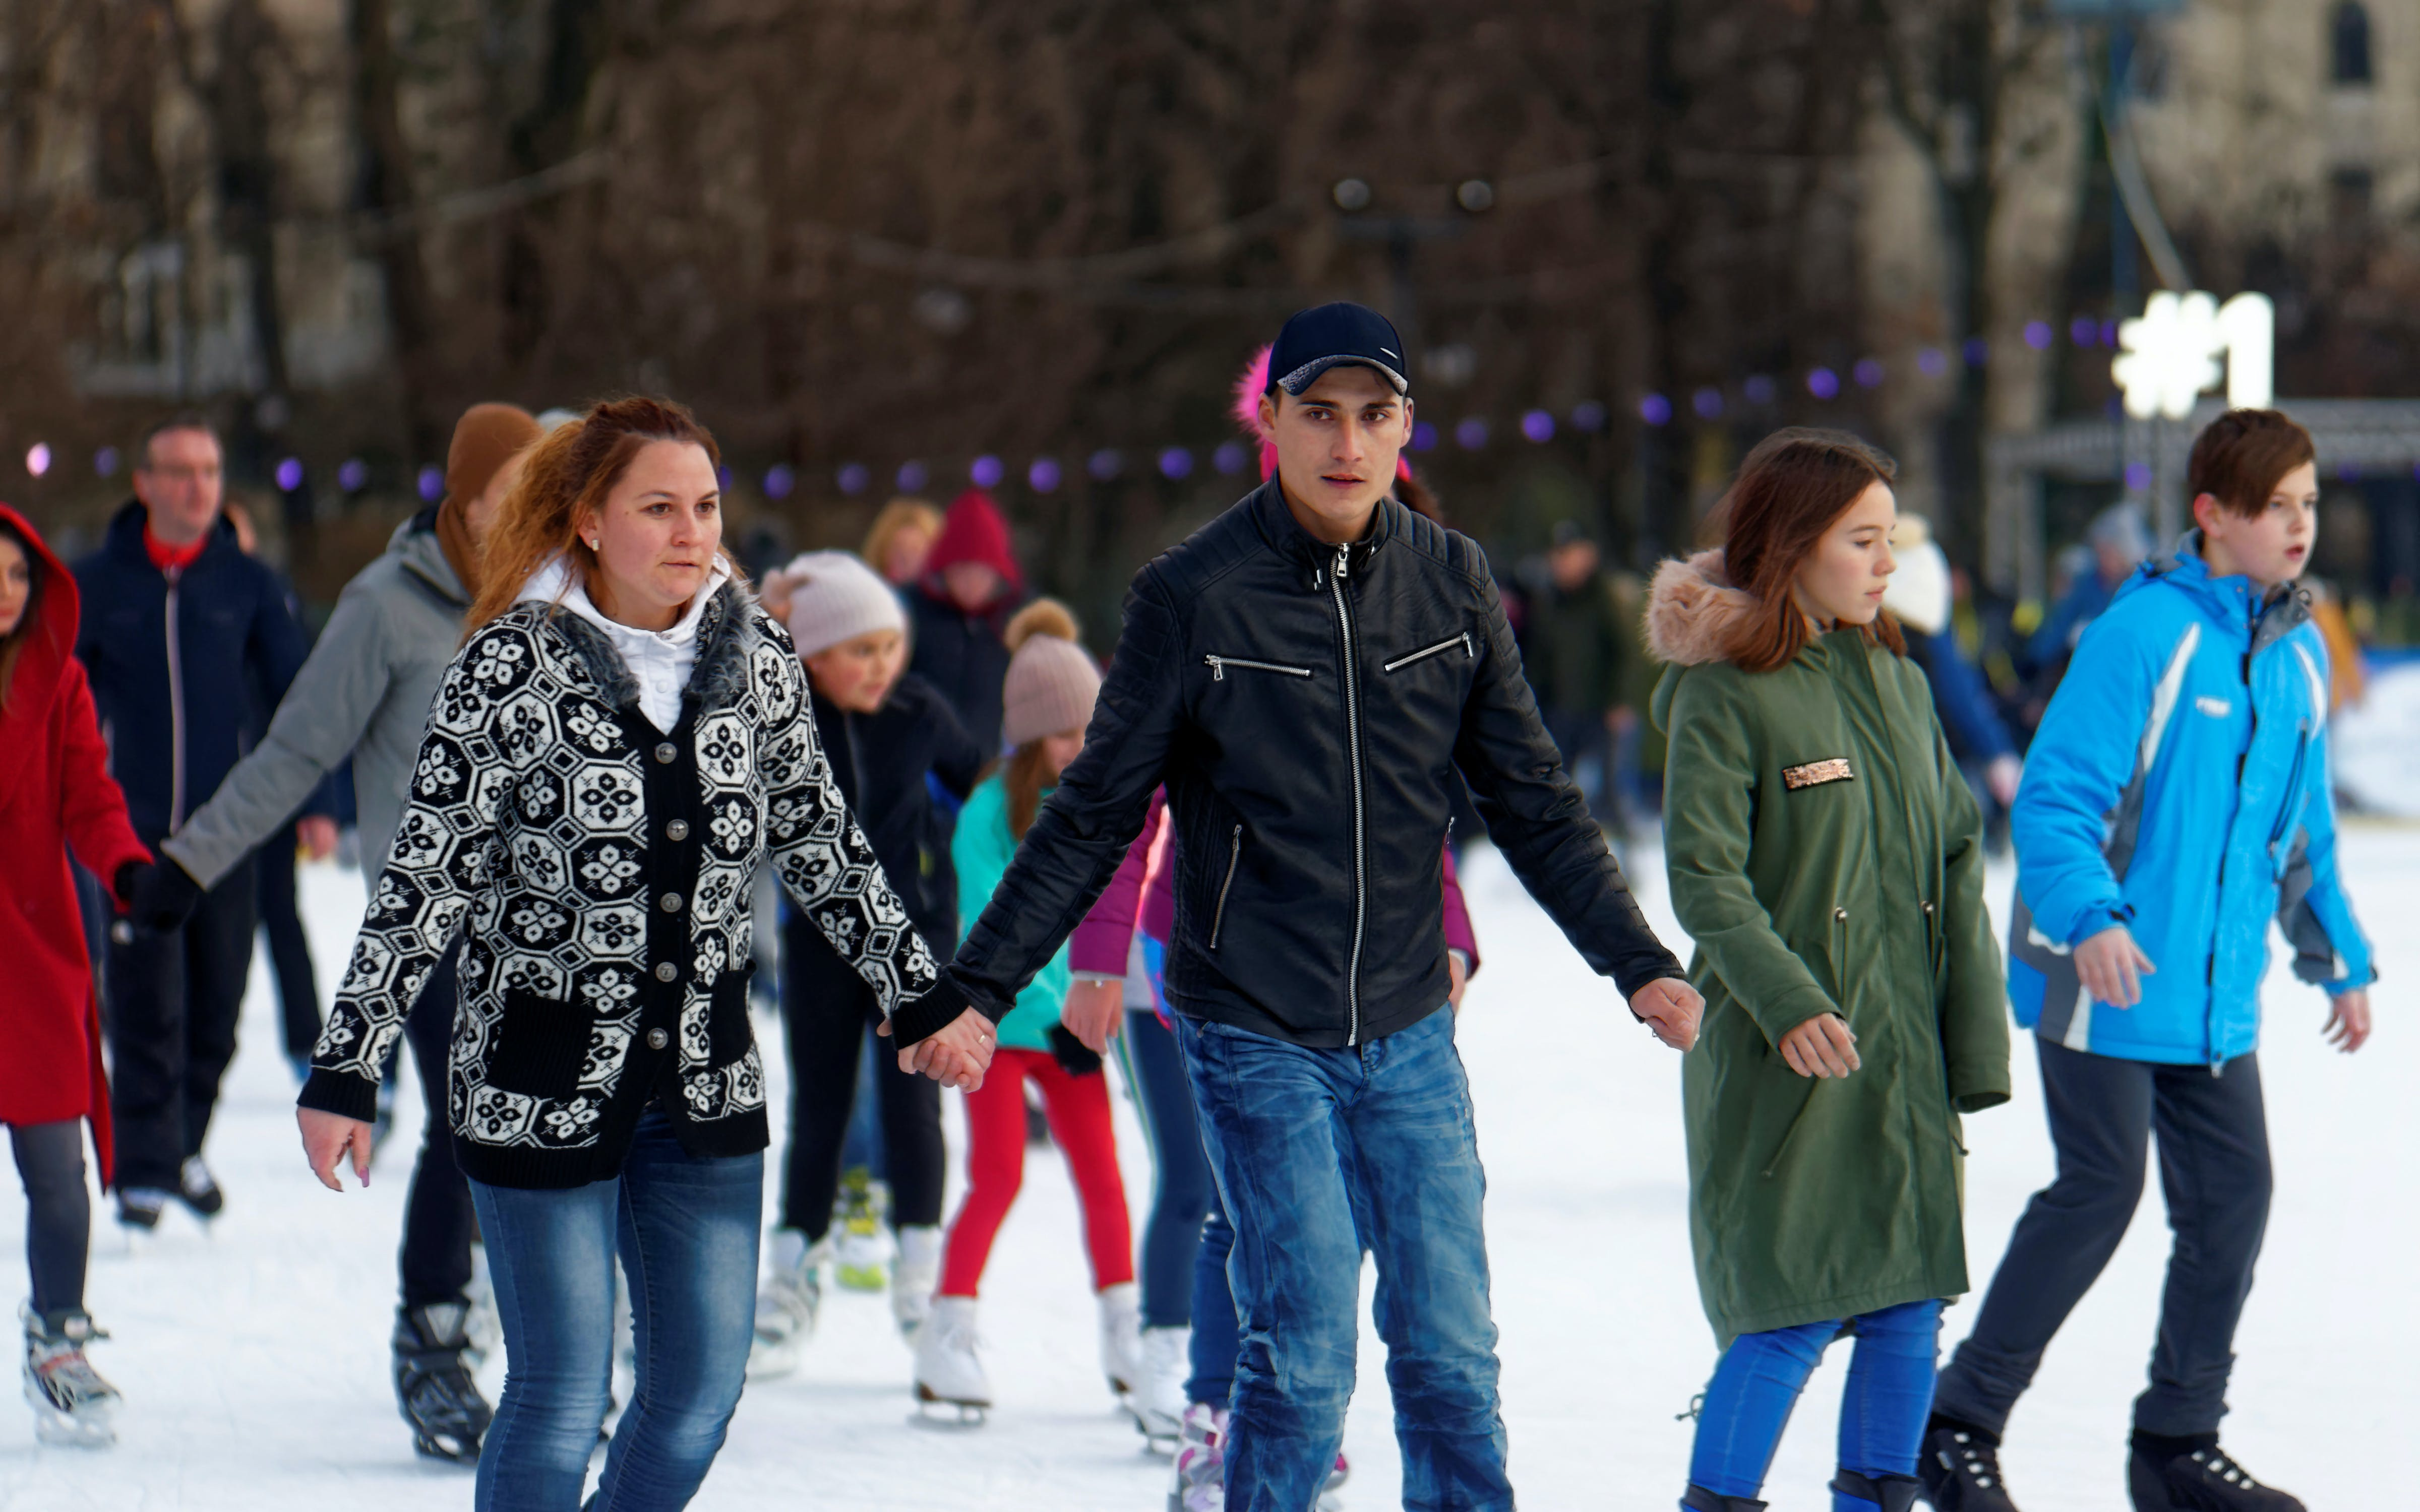 Free stock photo of ice skating rink, people, young couple, young people